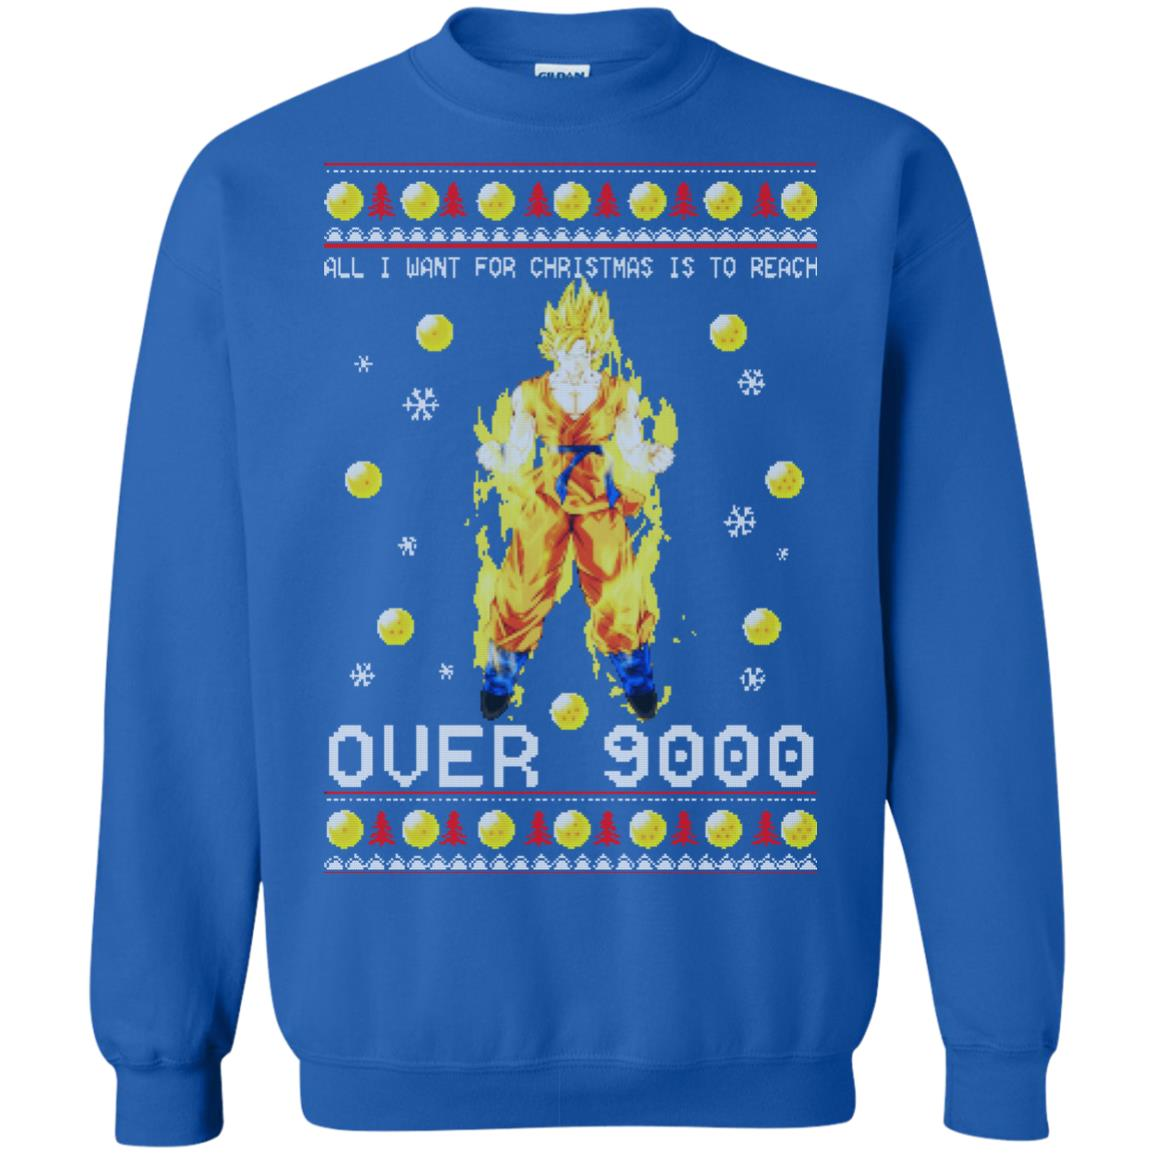 Dragon Ball Z All I Want For Christmas Is To Reach Over 9000 Sweatshirt